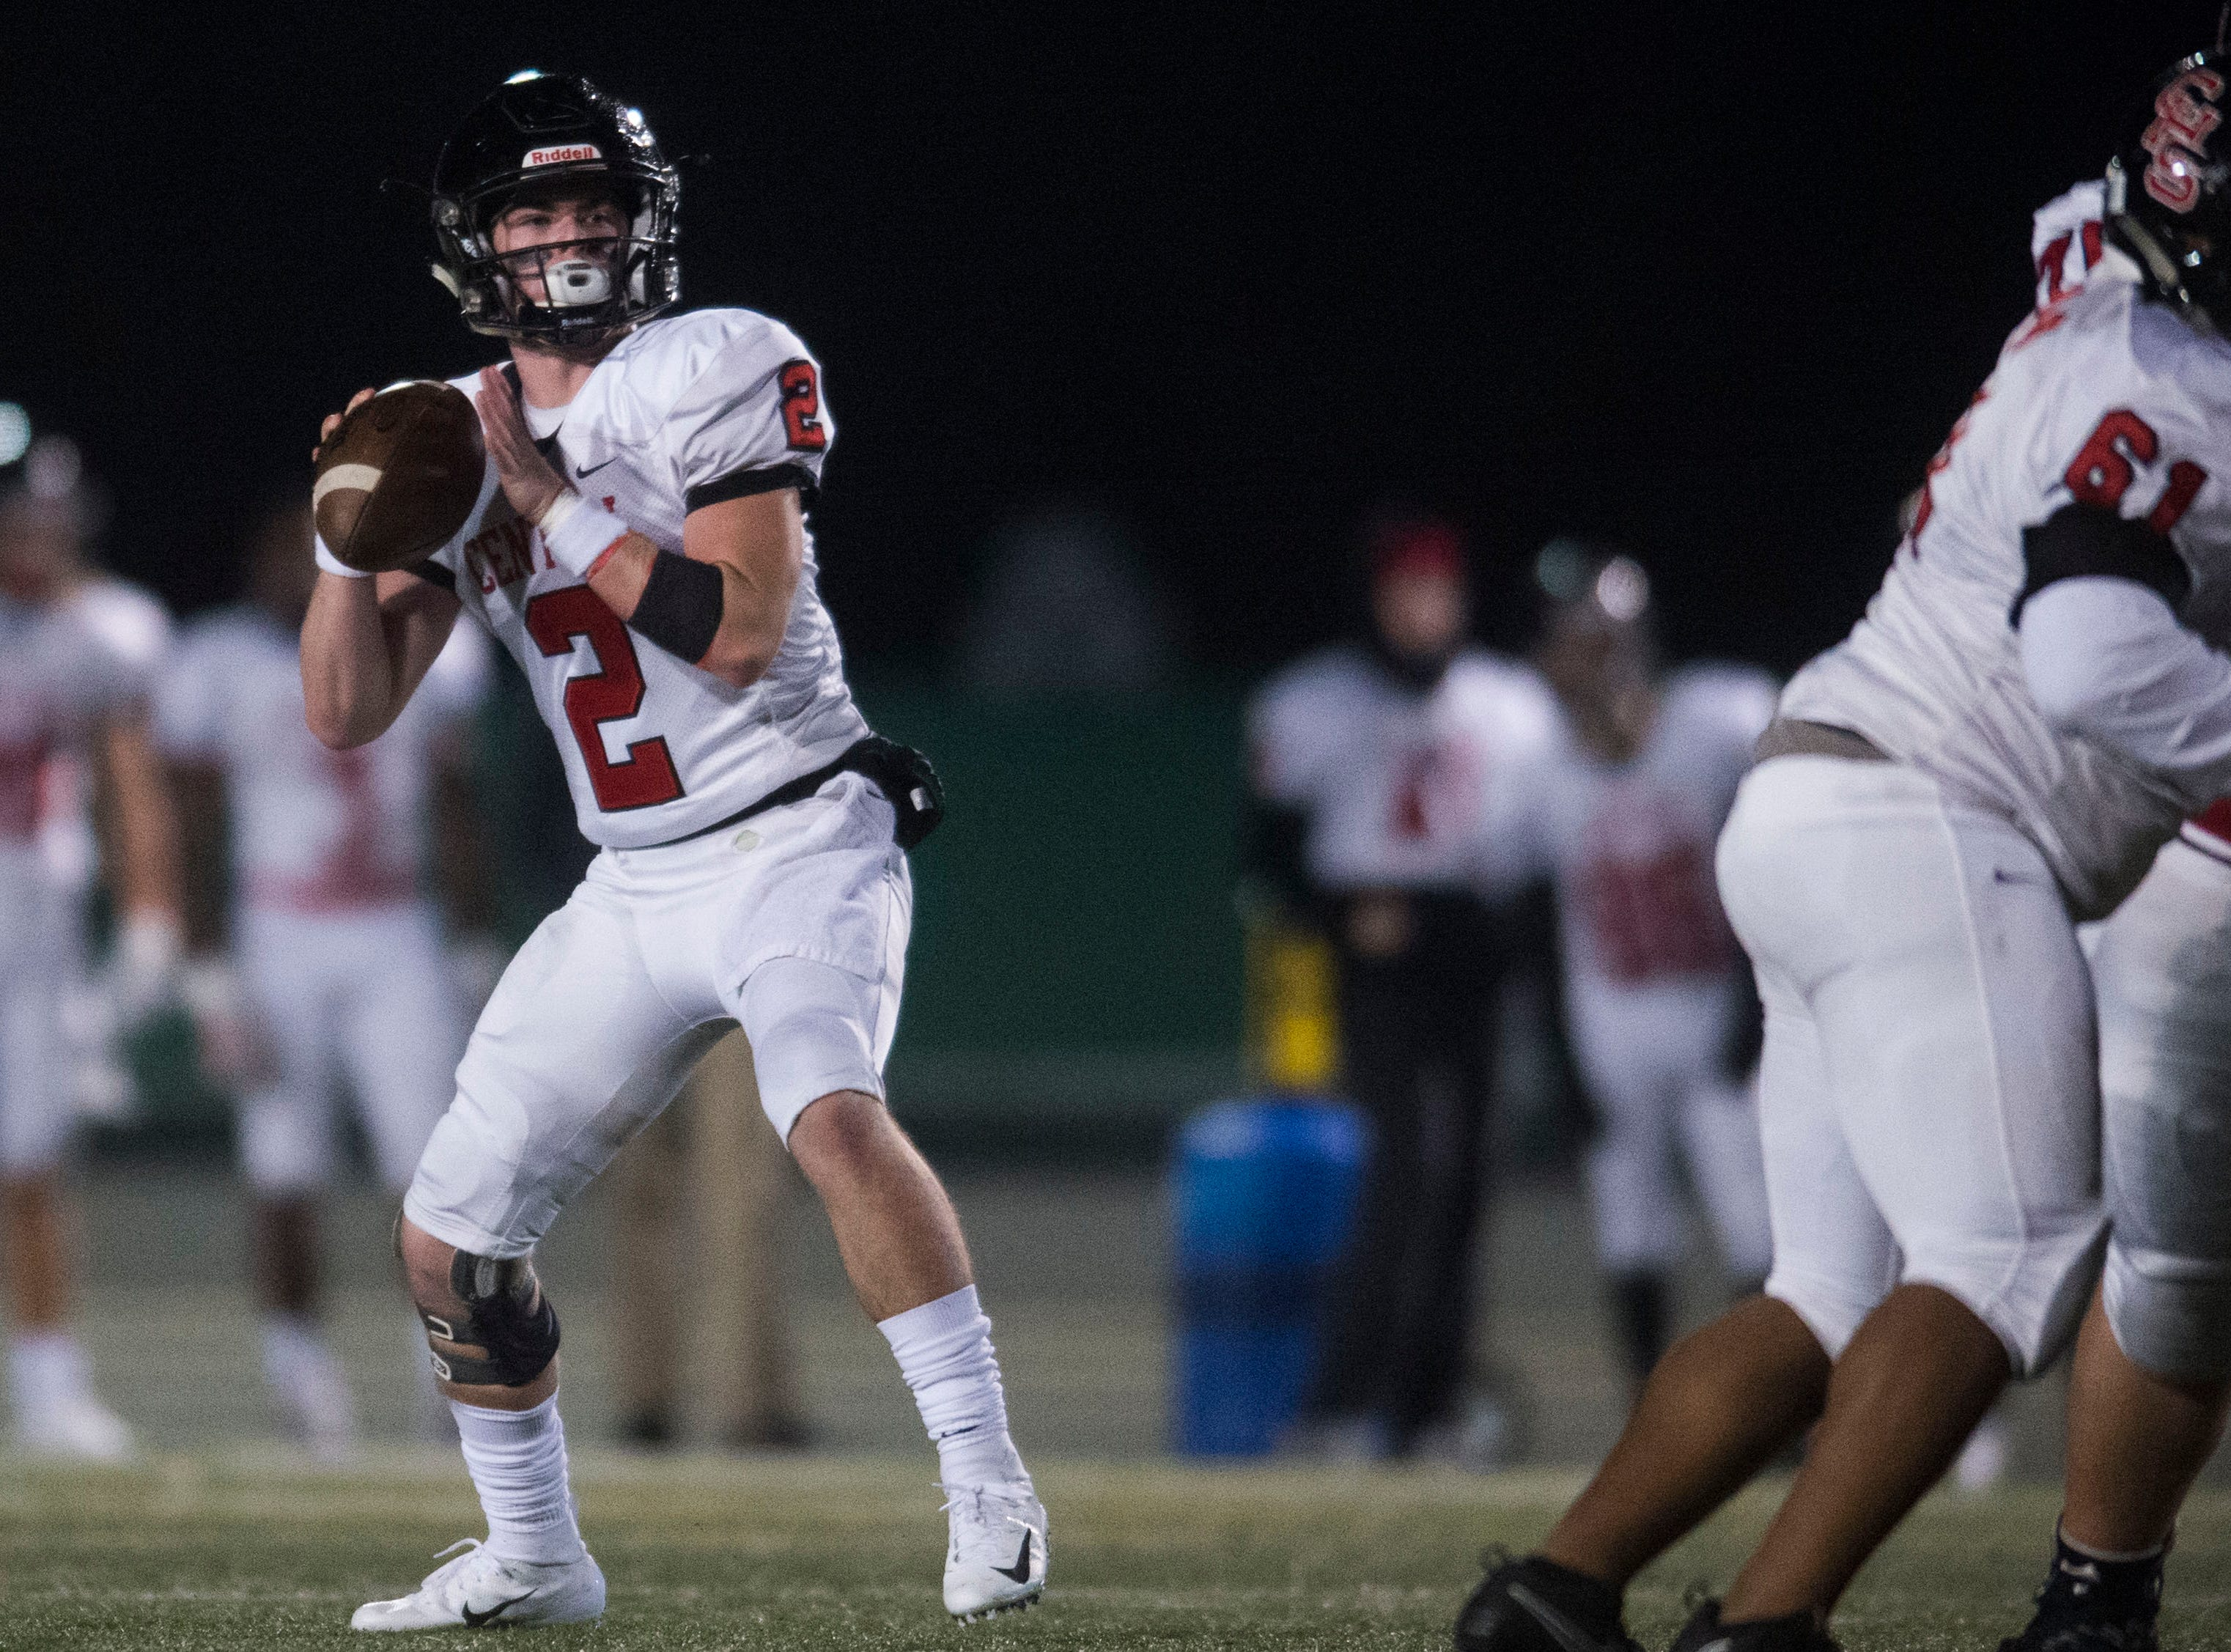 Central's Dakota Fawver (2) prepares to throw the ball during a Class 5A semifinal game between Central at Catholic Friday, Nov. 23, 2018. Central defeated Catholic 24-19.